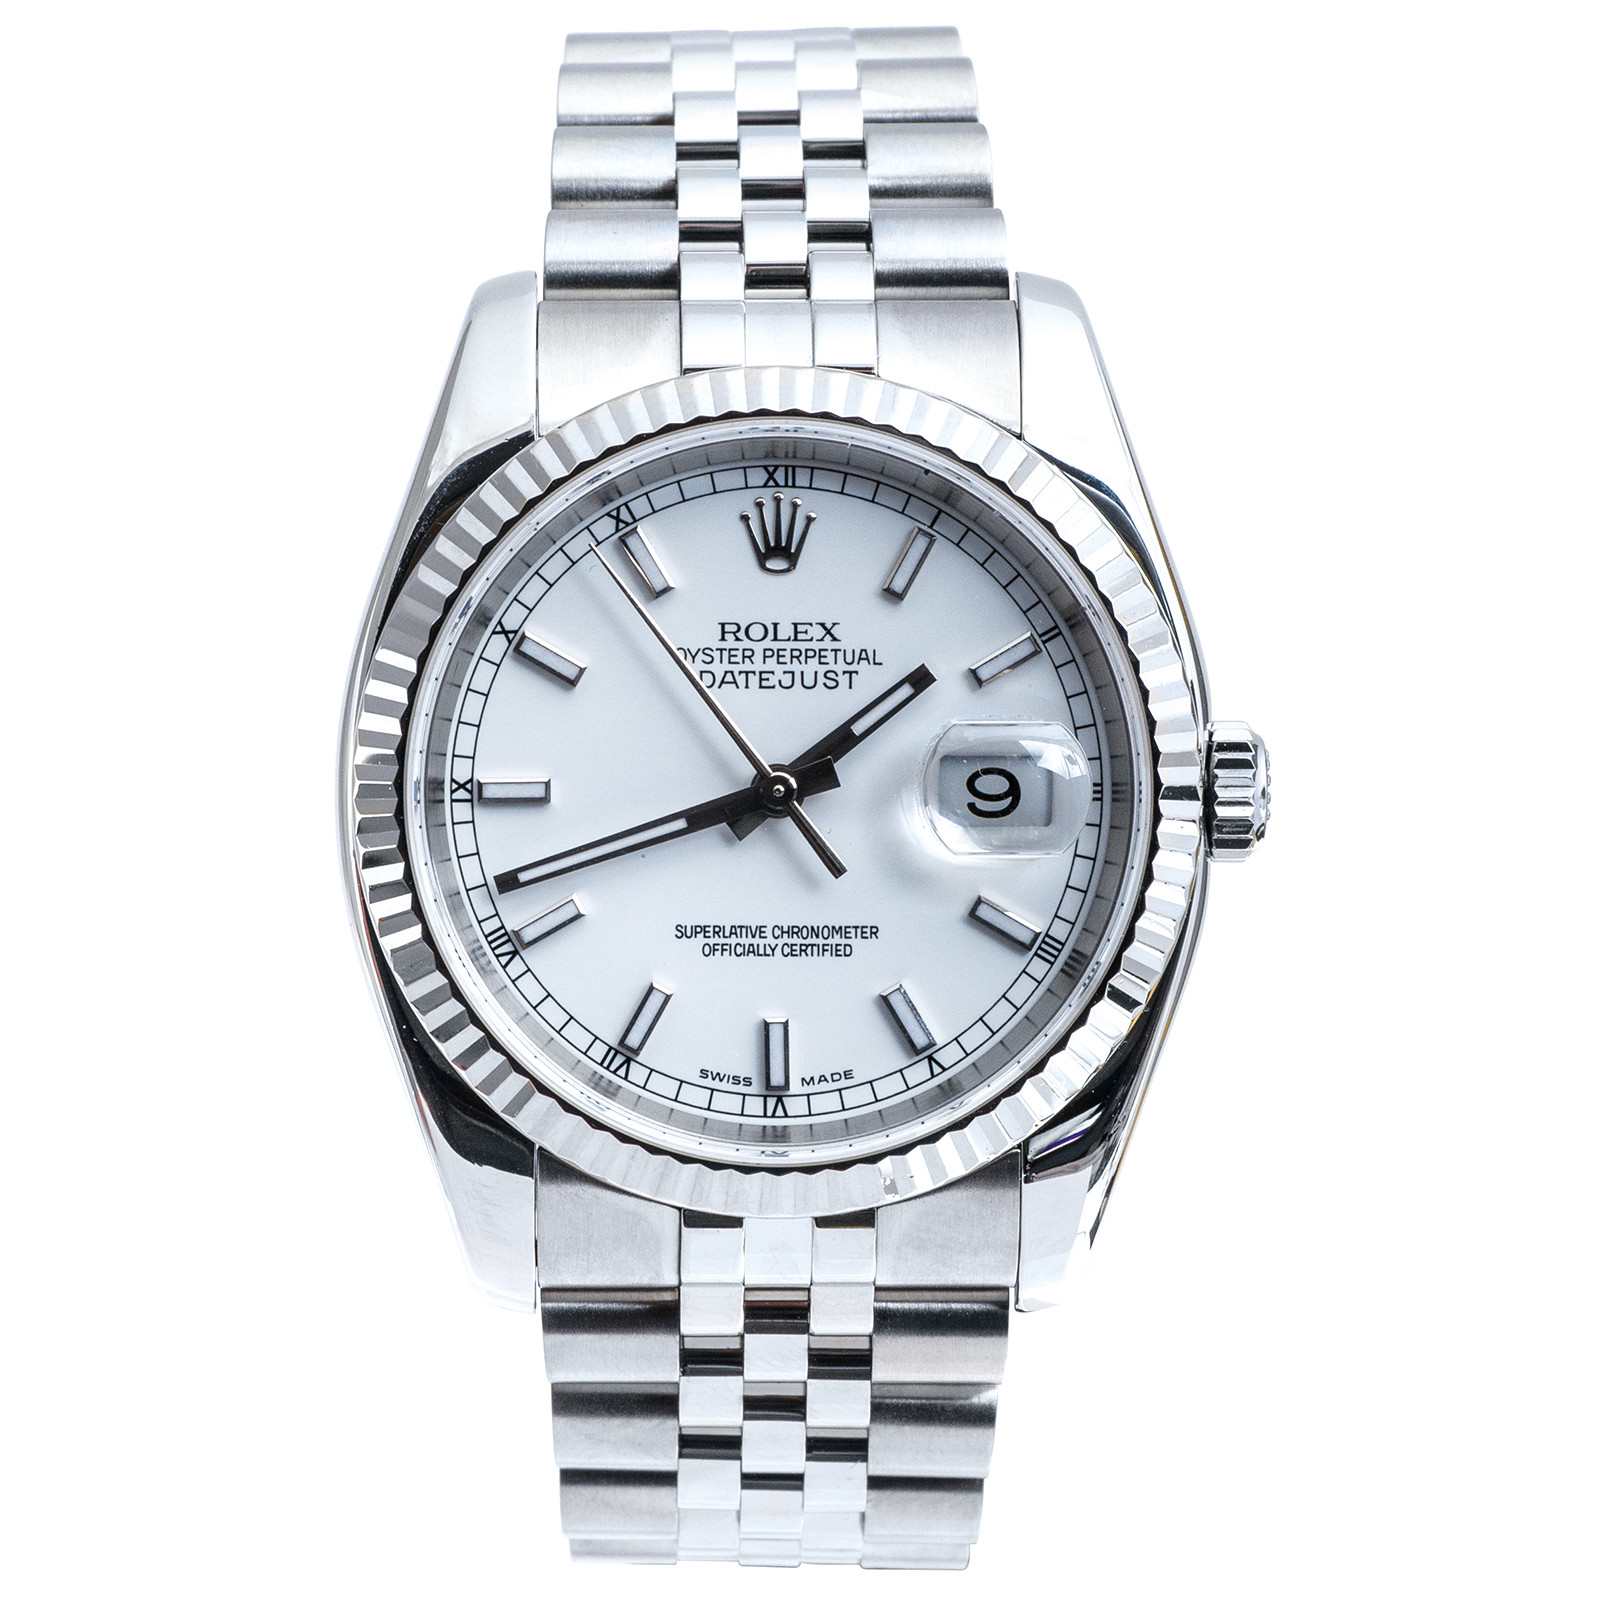 re-Owned Man's Rolex Datejust